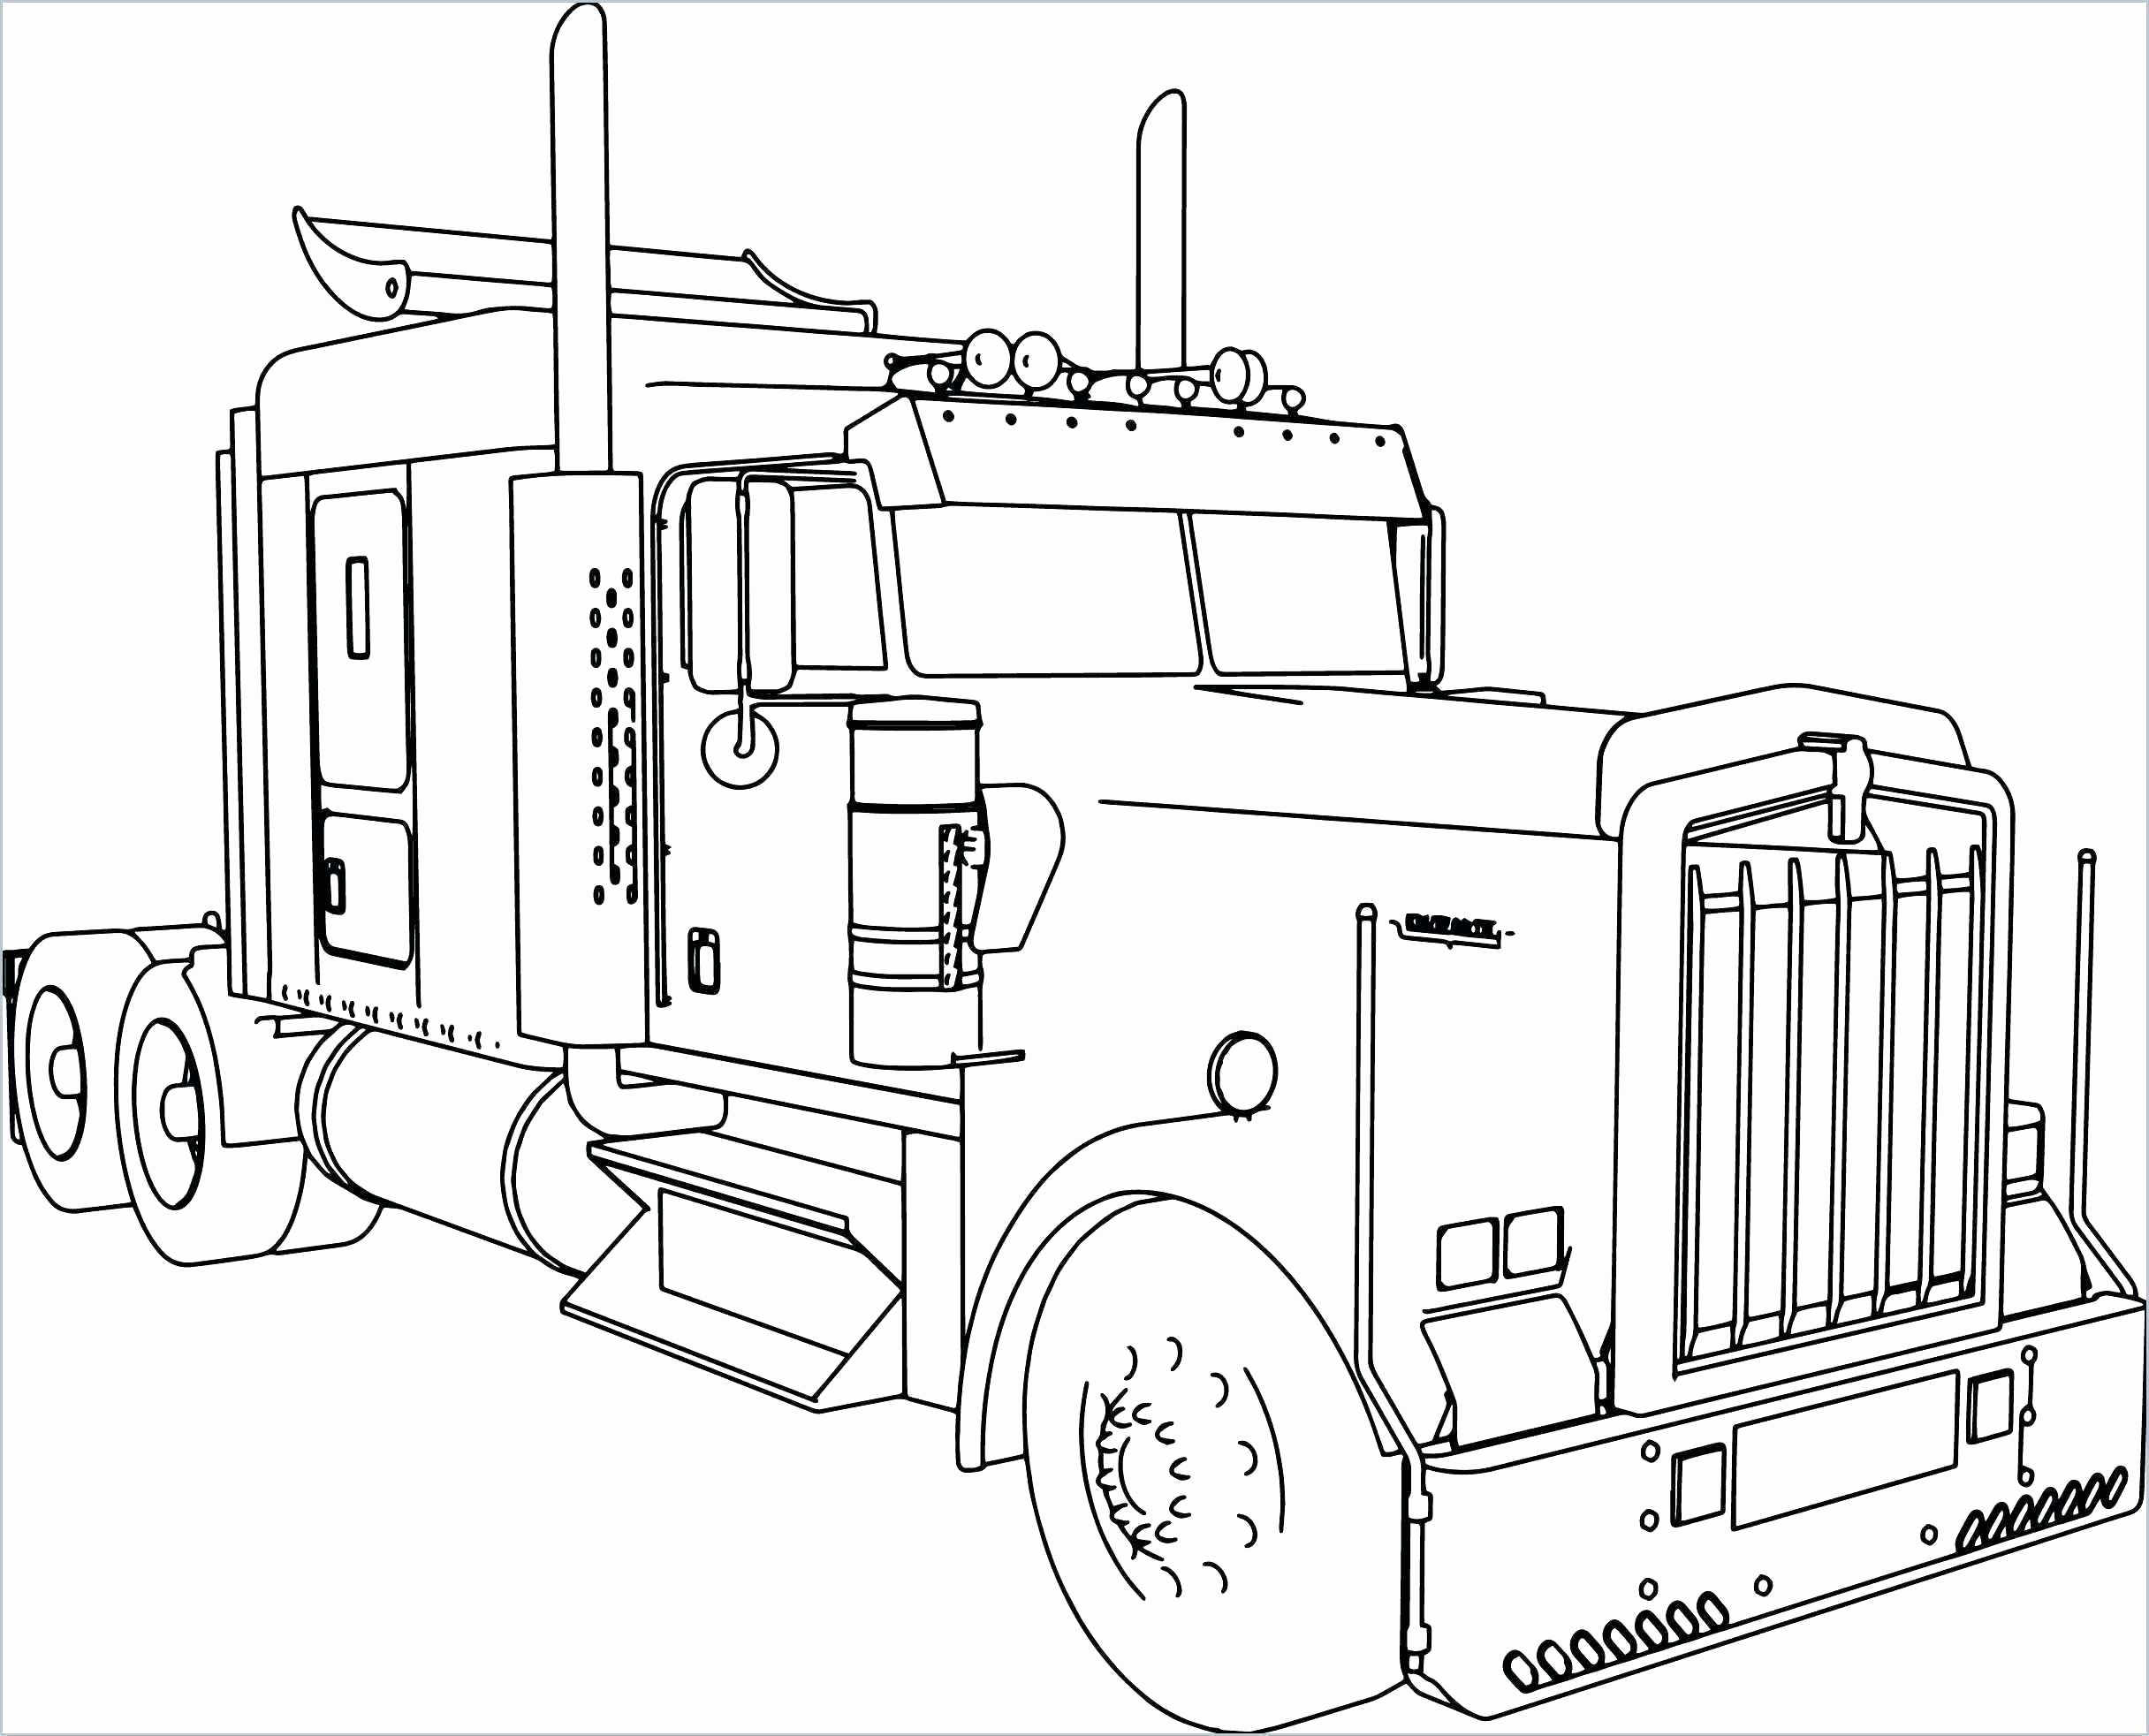 Chevy Truck Coloring Pages Awesome Of Semi Truck Coloring Page Sabadaphnecottage Truck Coloring Pages Kenworth Trucks Cars Coloring Pages